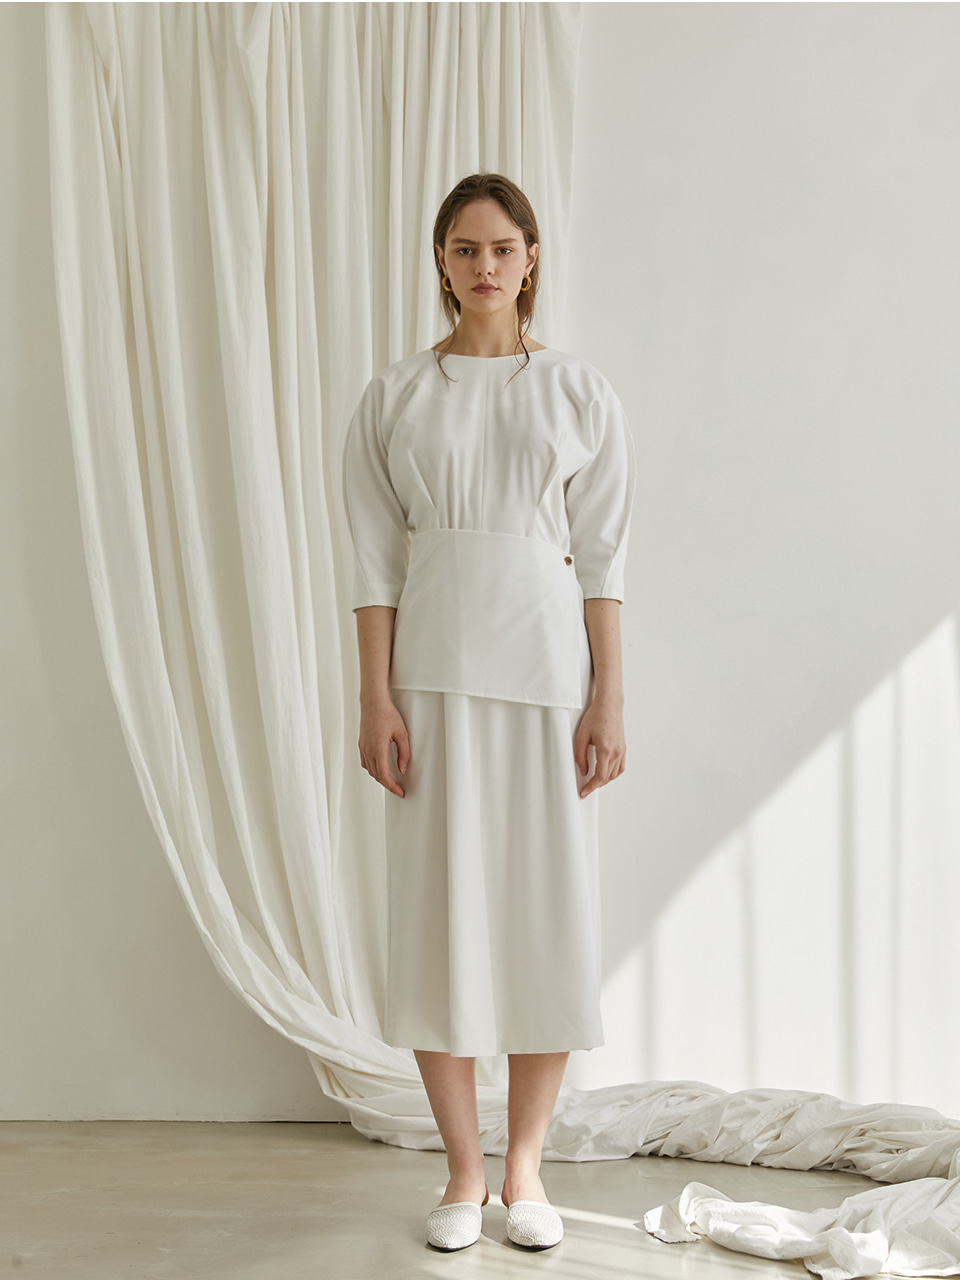 [REFURB] Reversible wrap dress - White